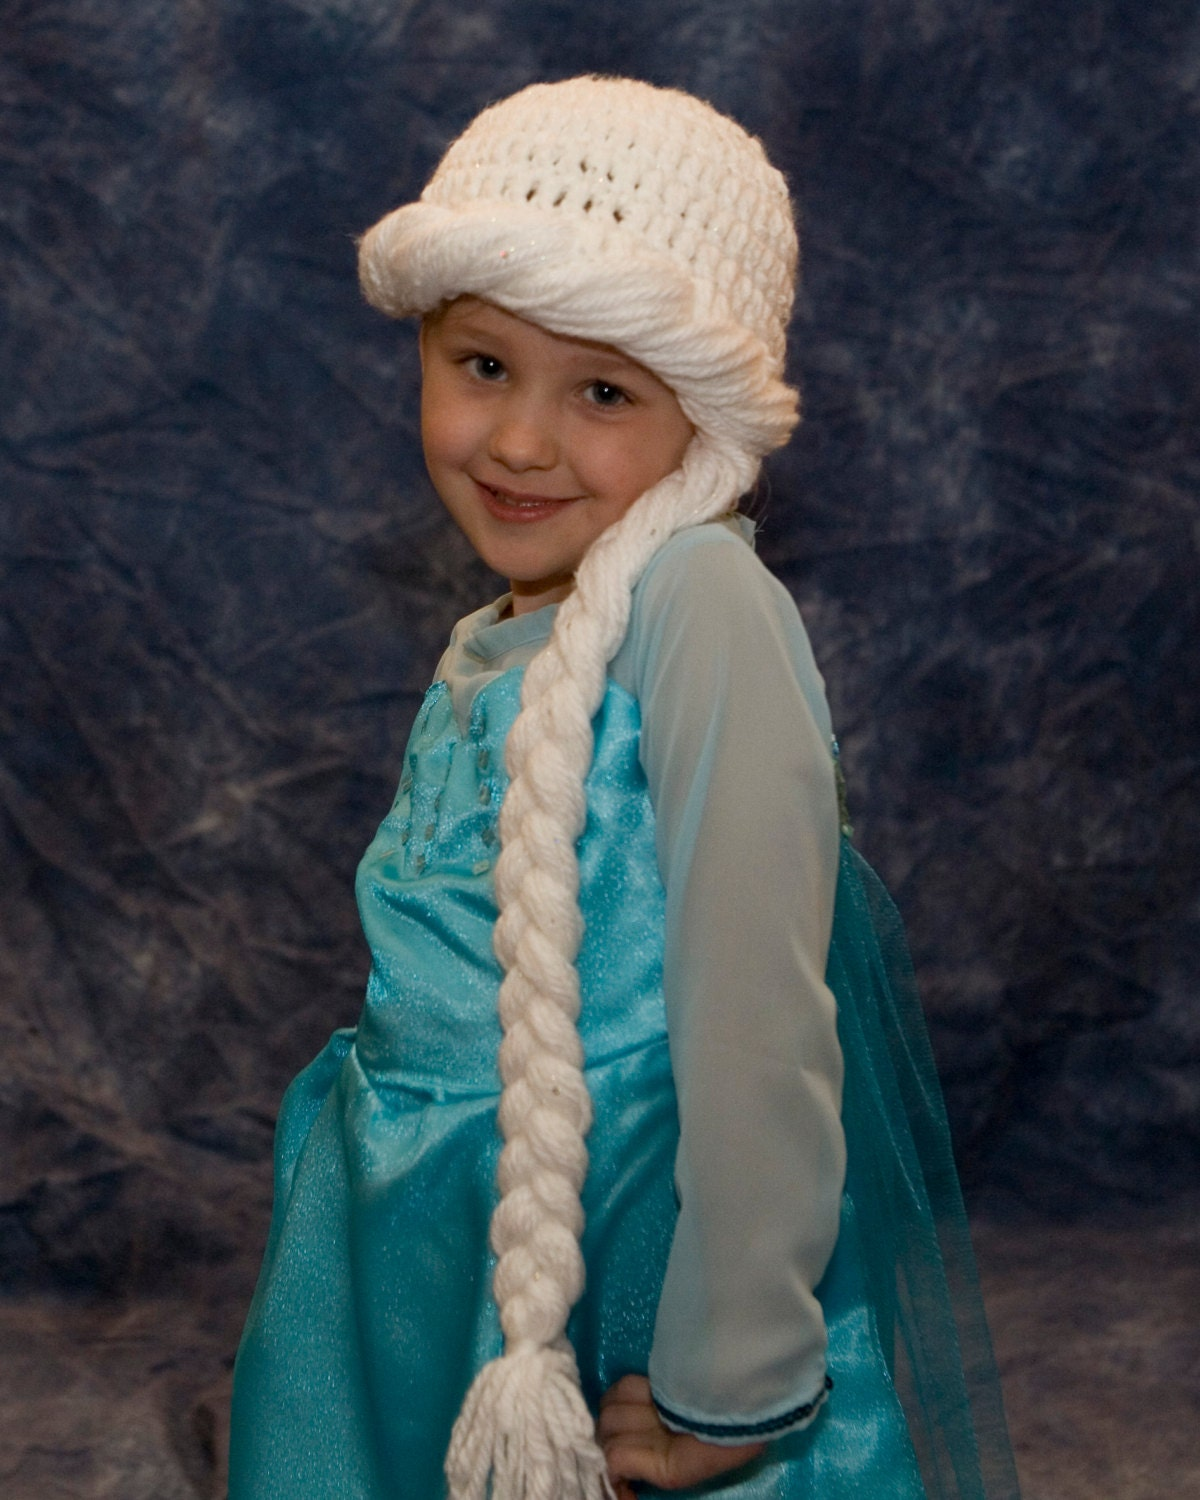 Elsa Hat Frozen Hat Elsa Costume Frozen Costume Elsa